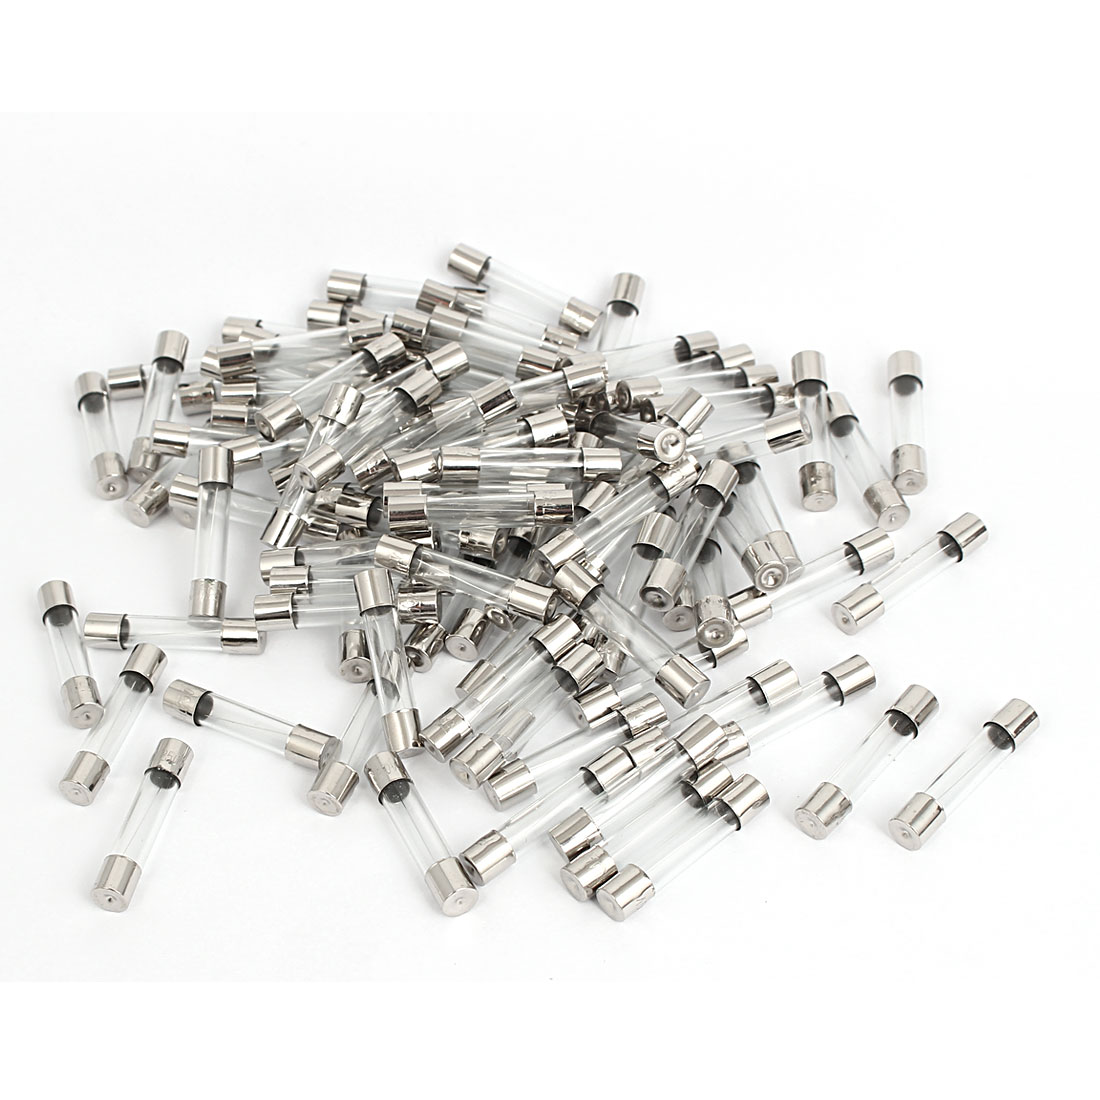 6mm x 30mm AC 250V 5A Quick Blow Glass Tube Fuses Replacement 100 Pcs